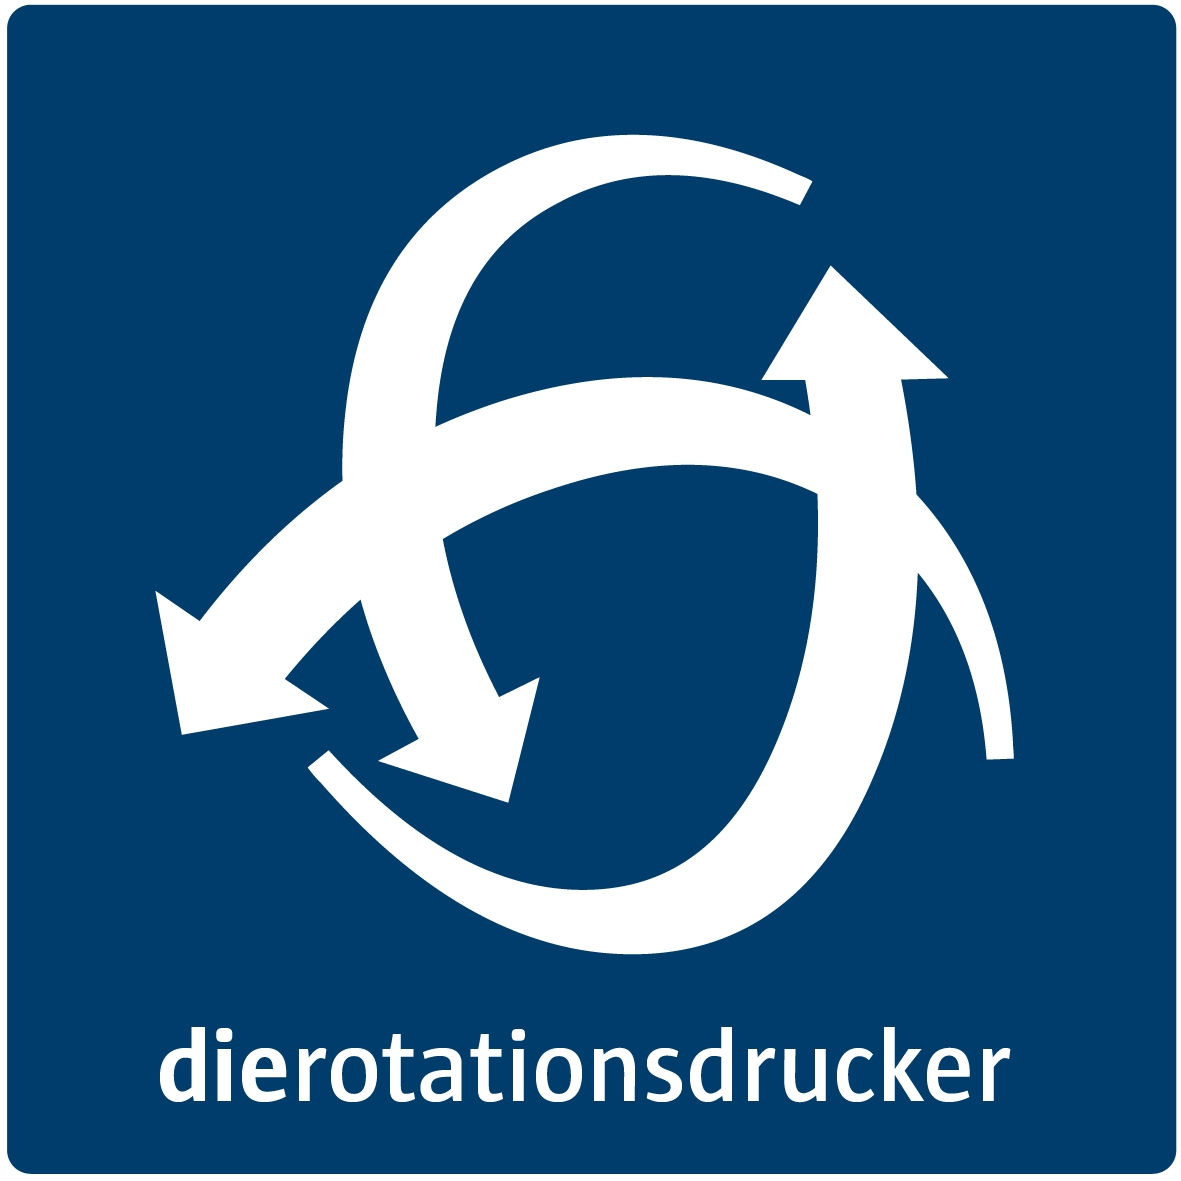 dierotationsdrucker